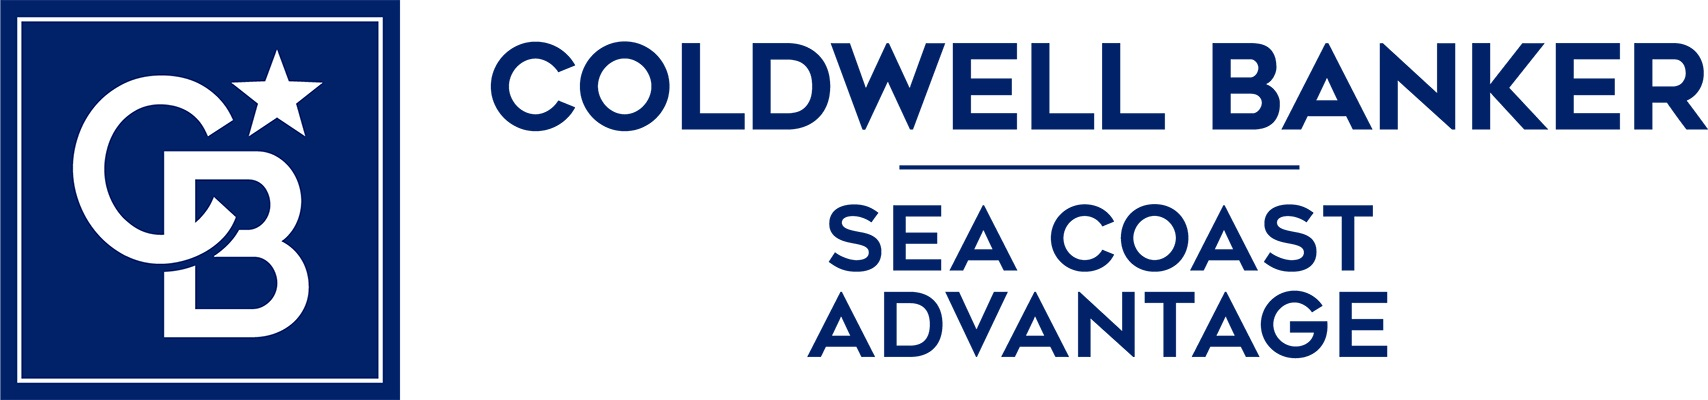 Renee Brandon - Coldwell Banker Sea Coast Advantage Realty